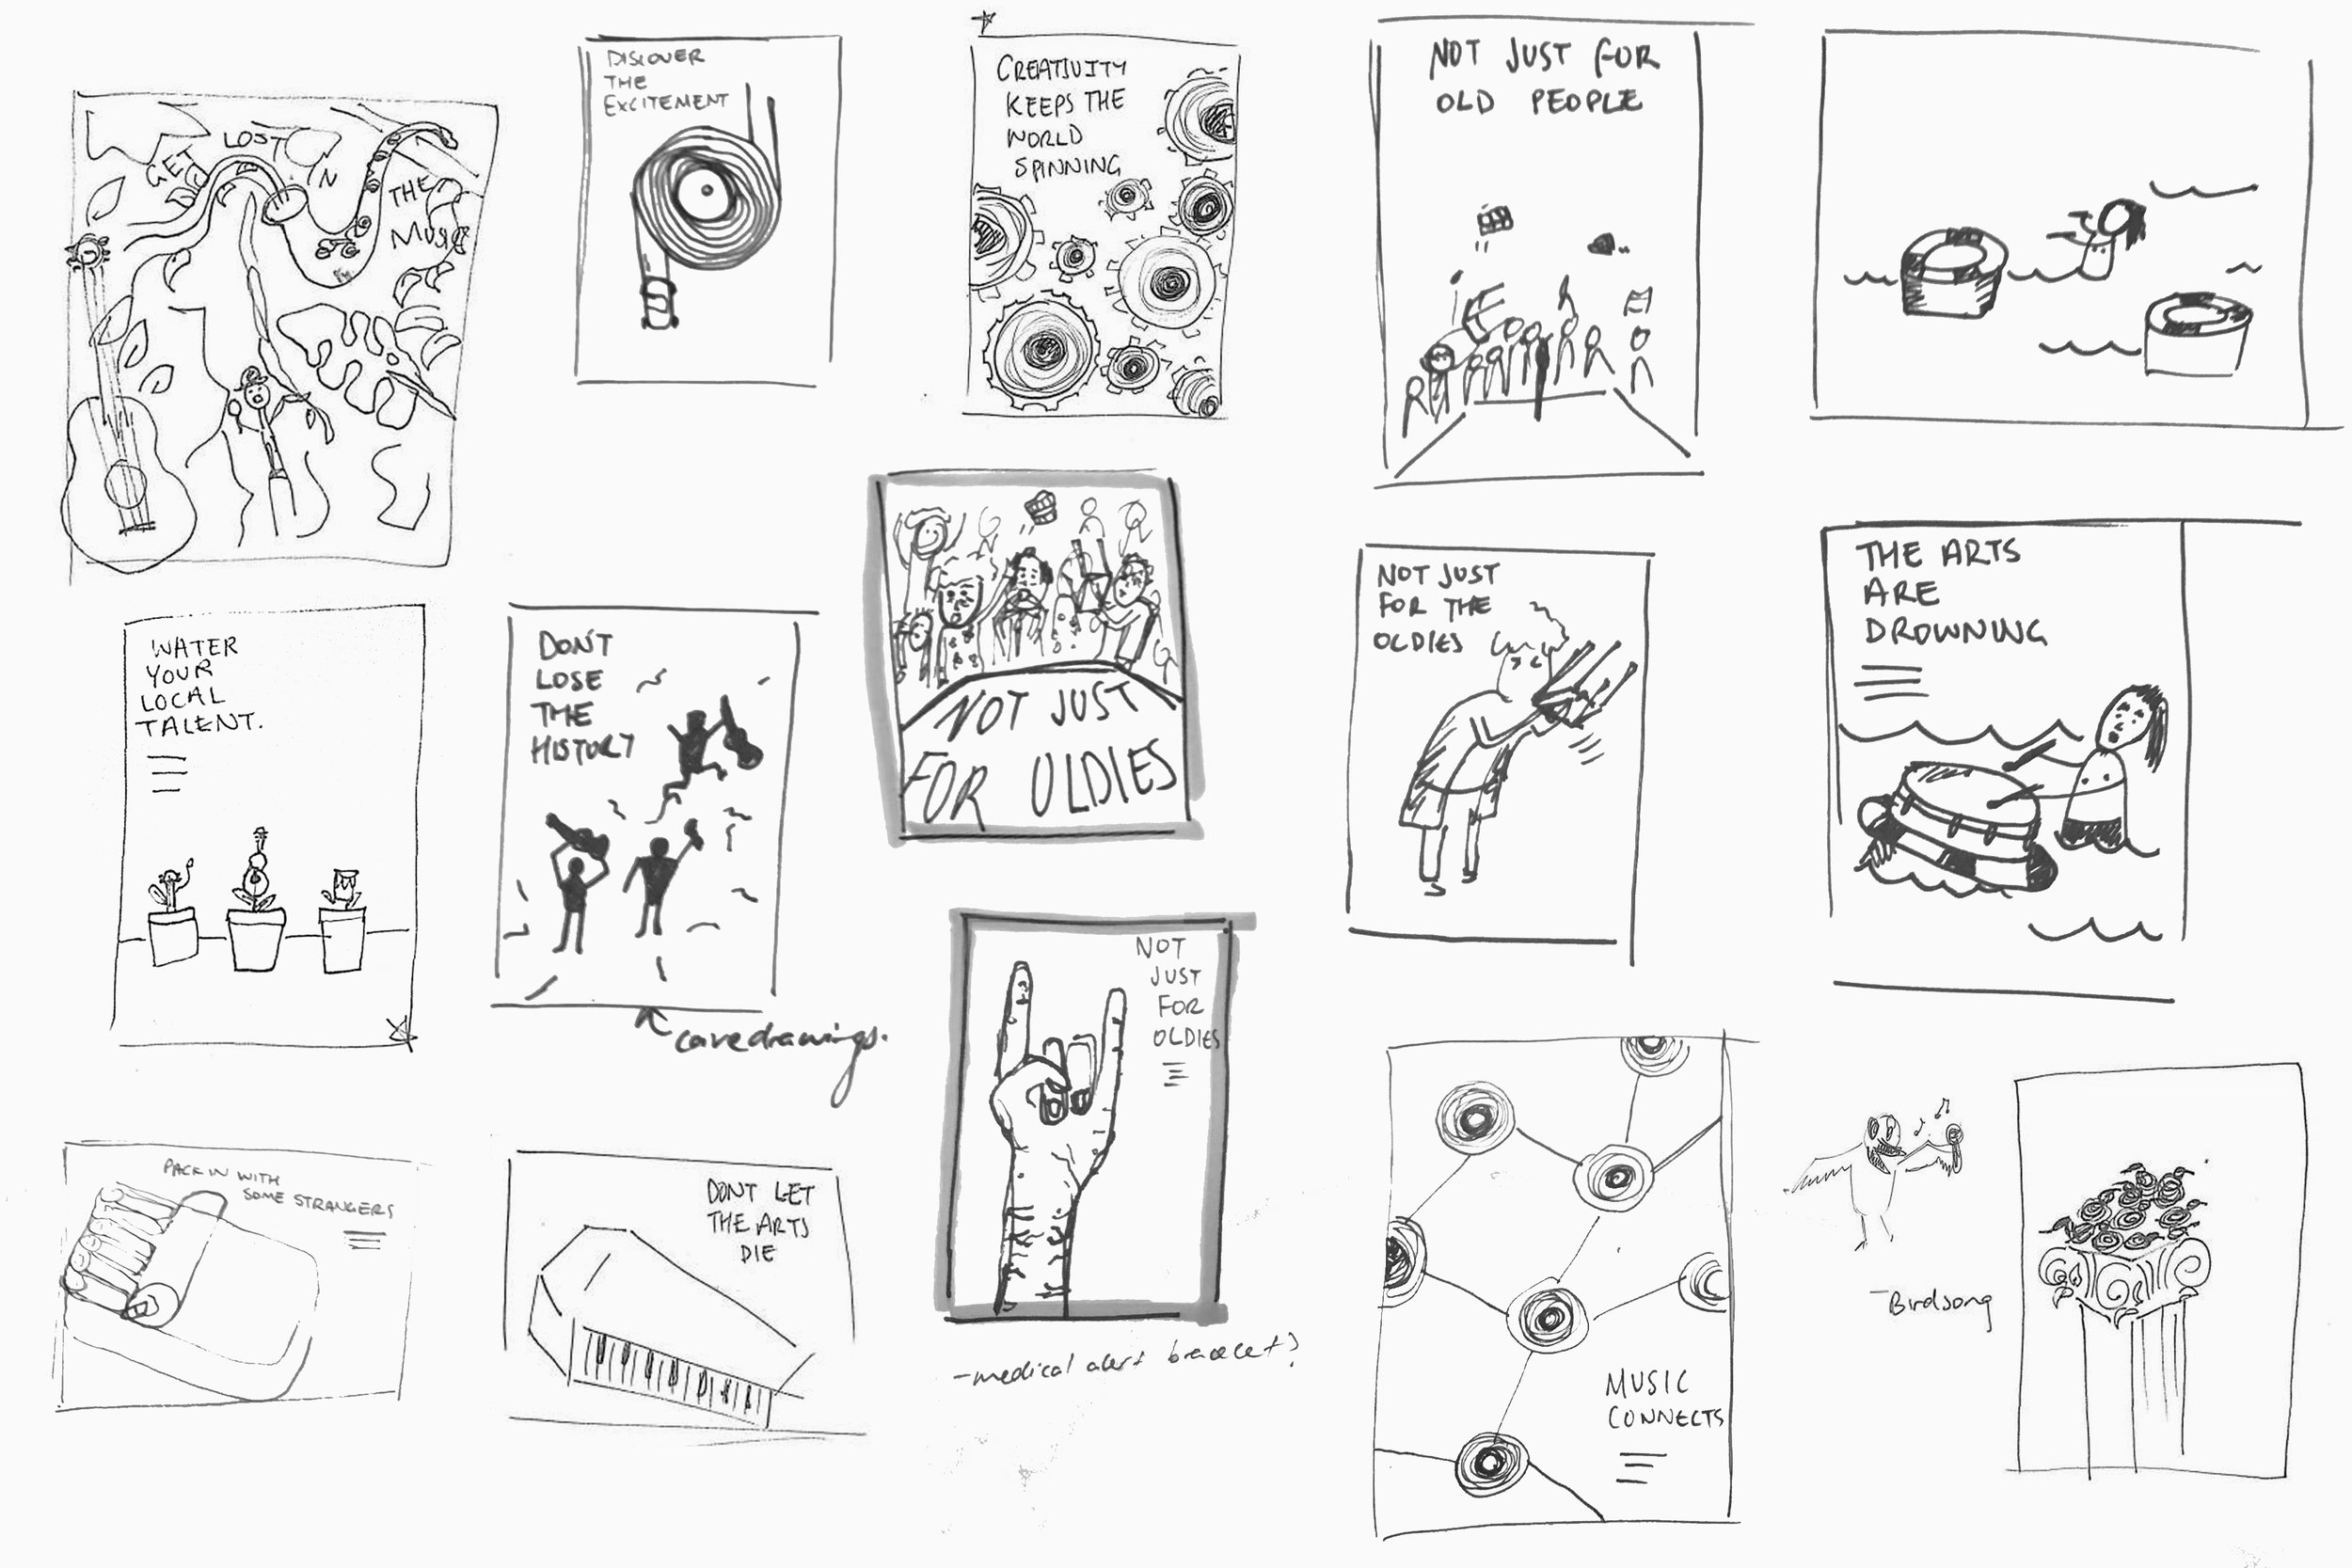 Rapid ideation through quick thumbnailing.